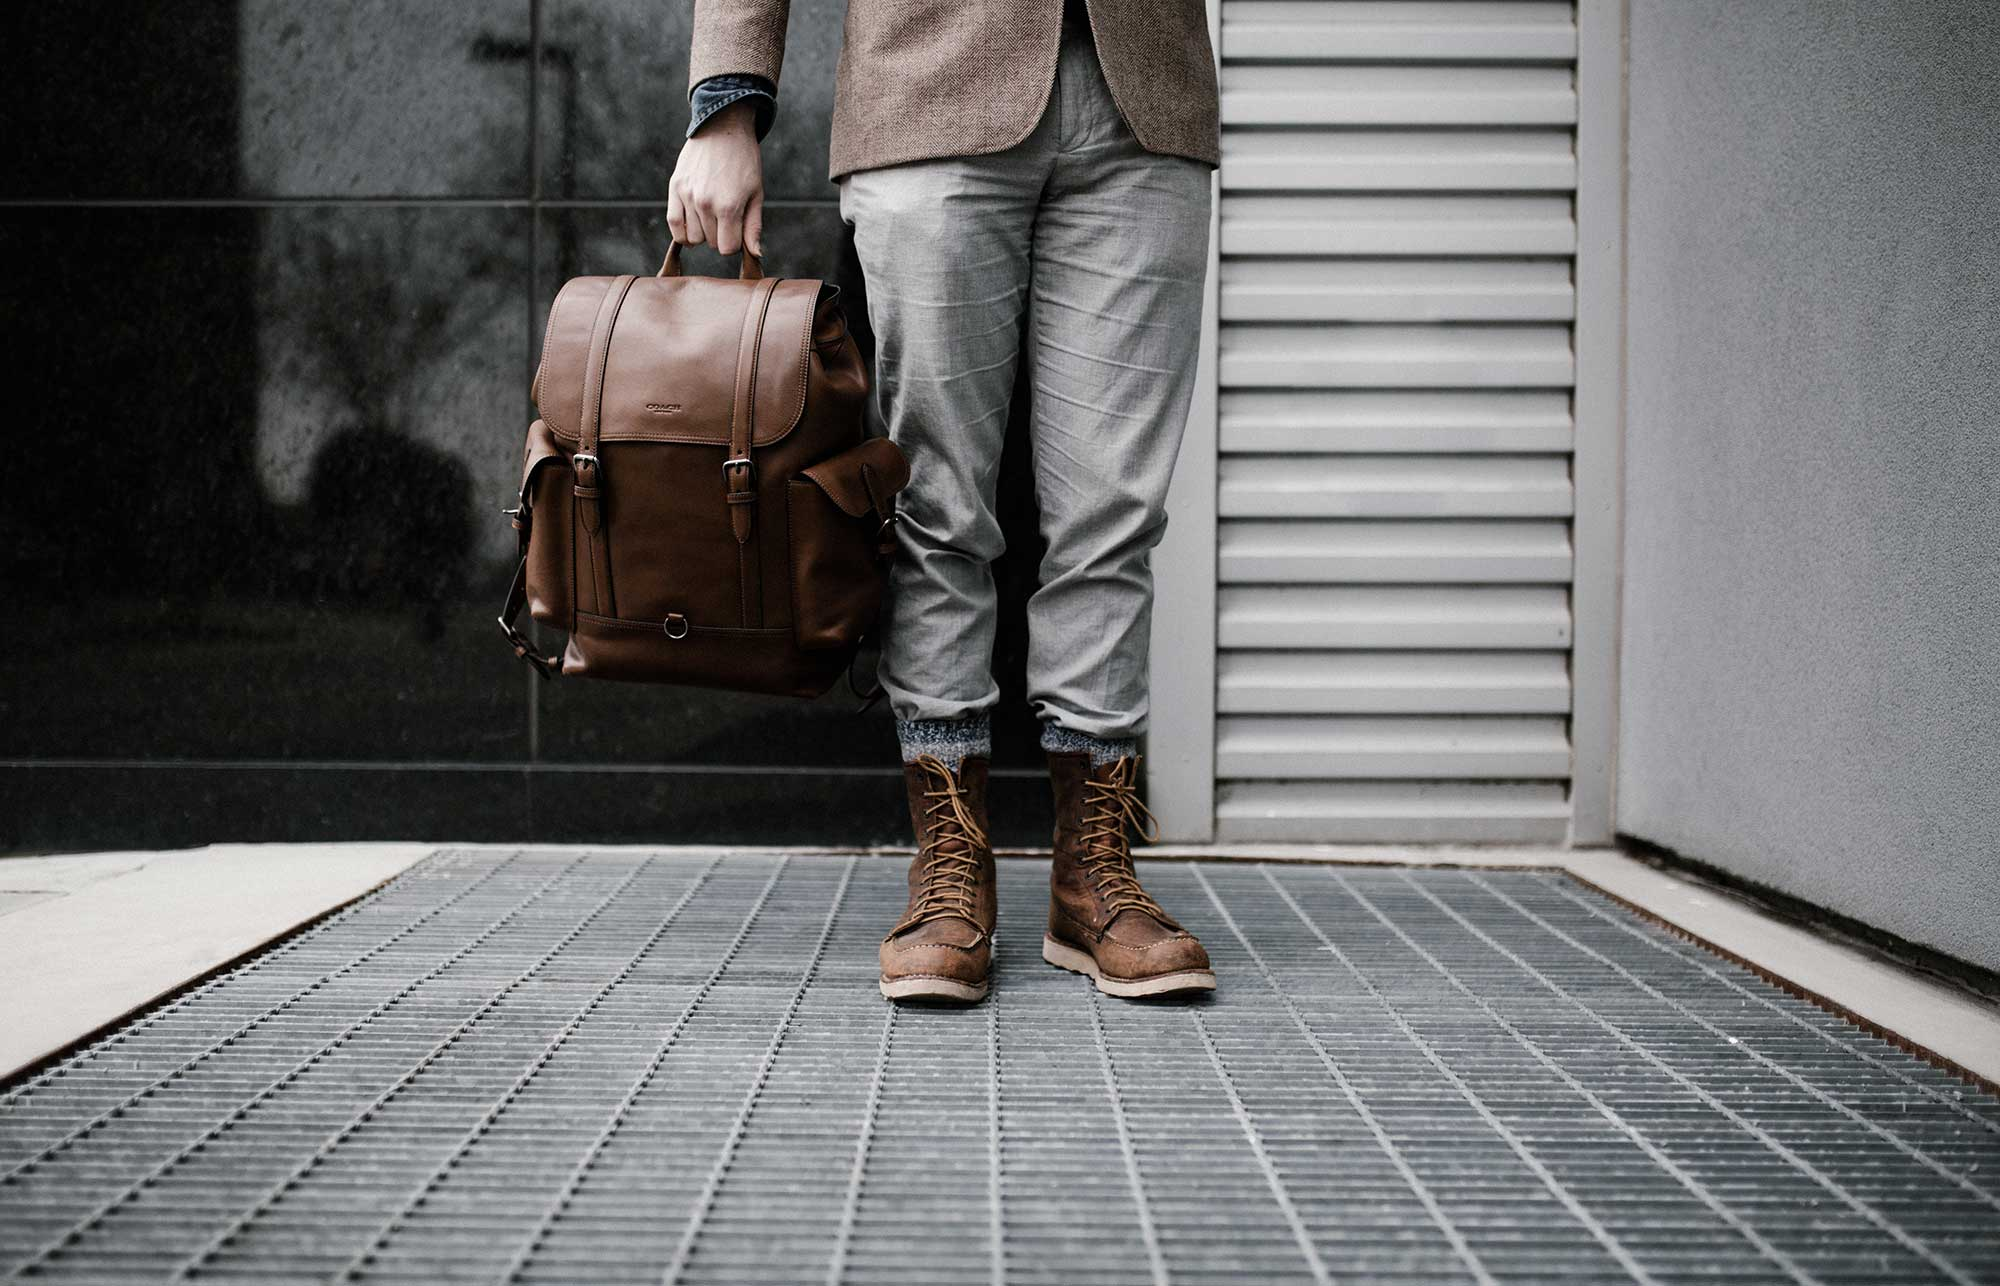 Well-dressed man holding a leather bag